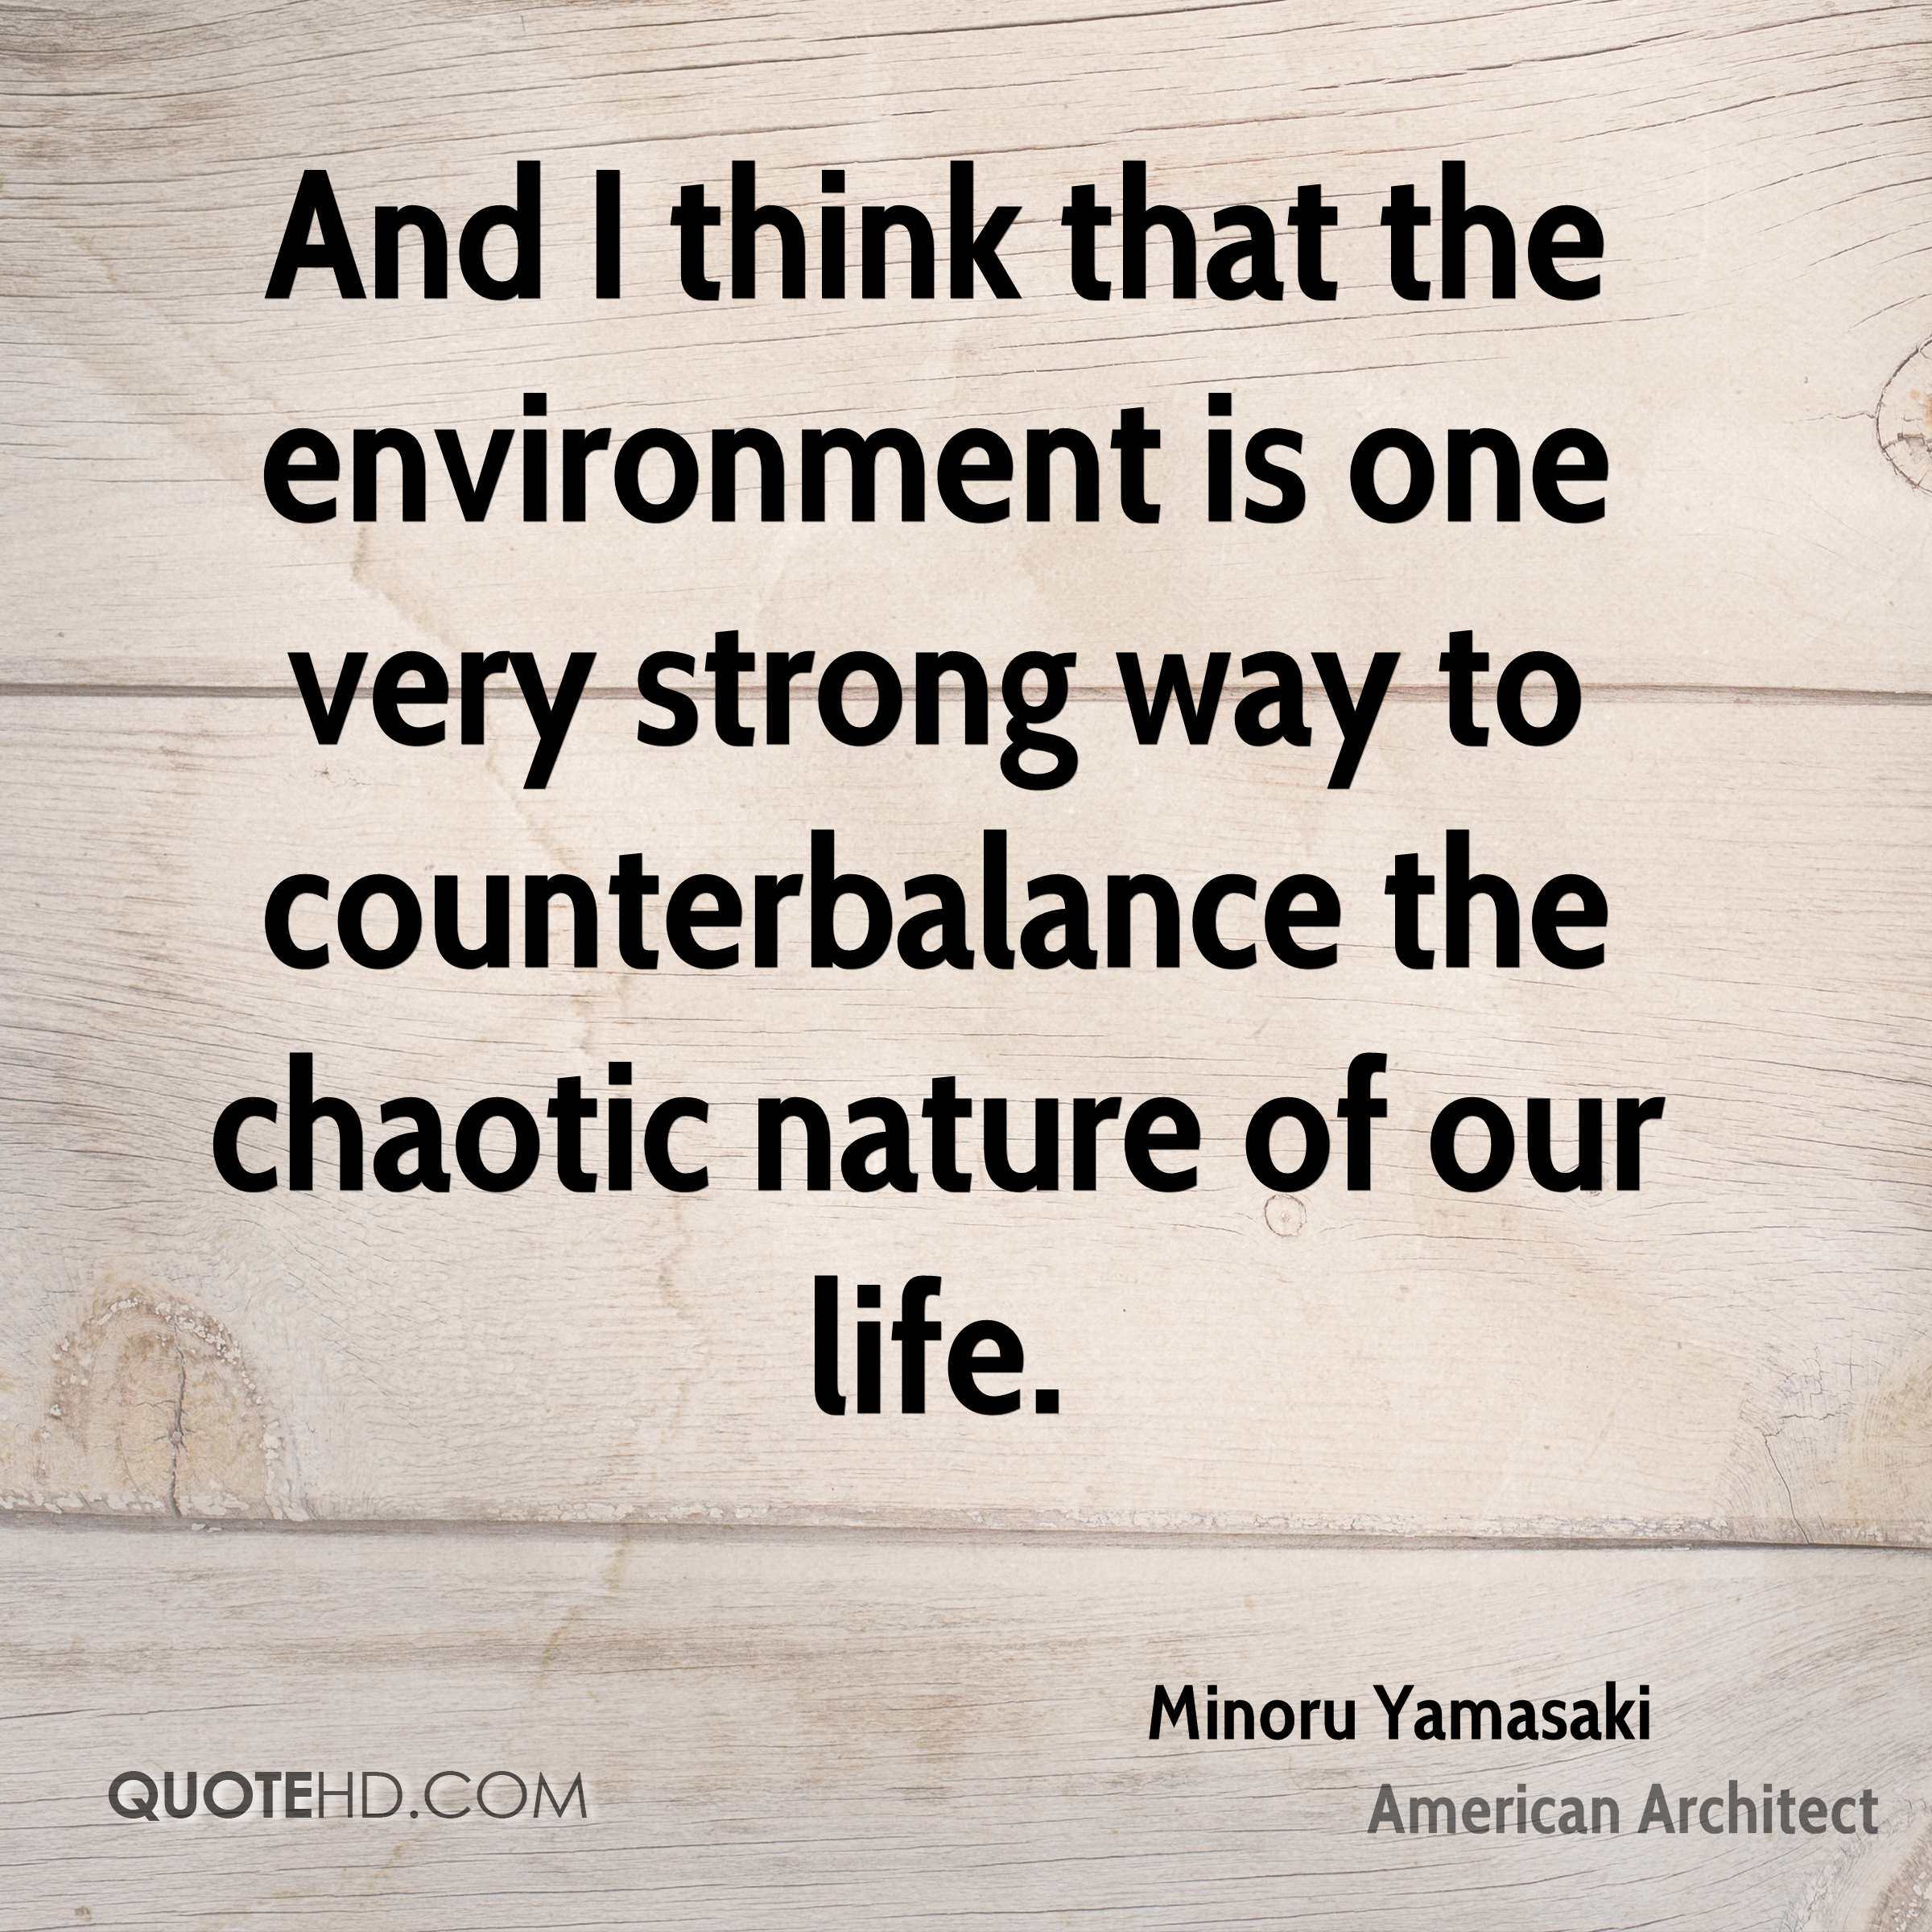 And I think that the environment is one very strong way to counterbalance the chaotic nature of our life.